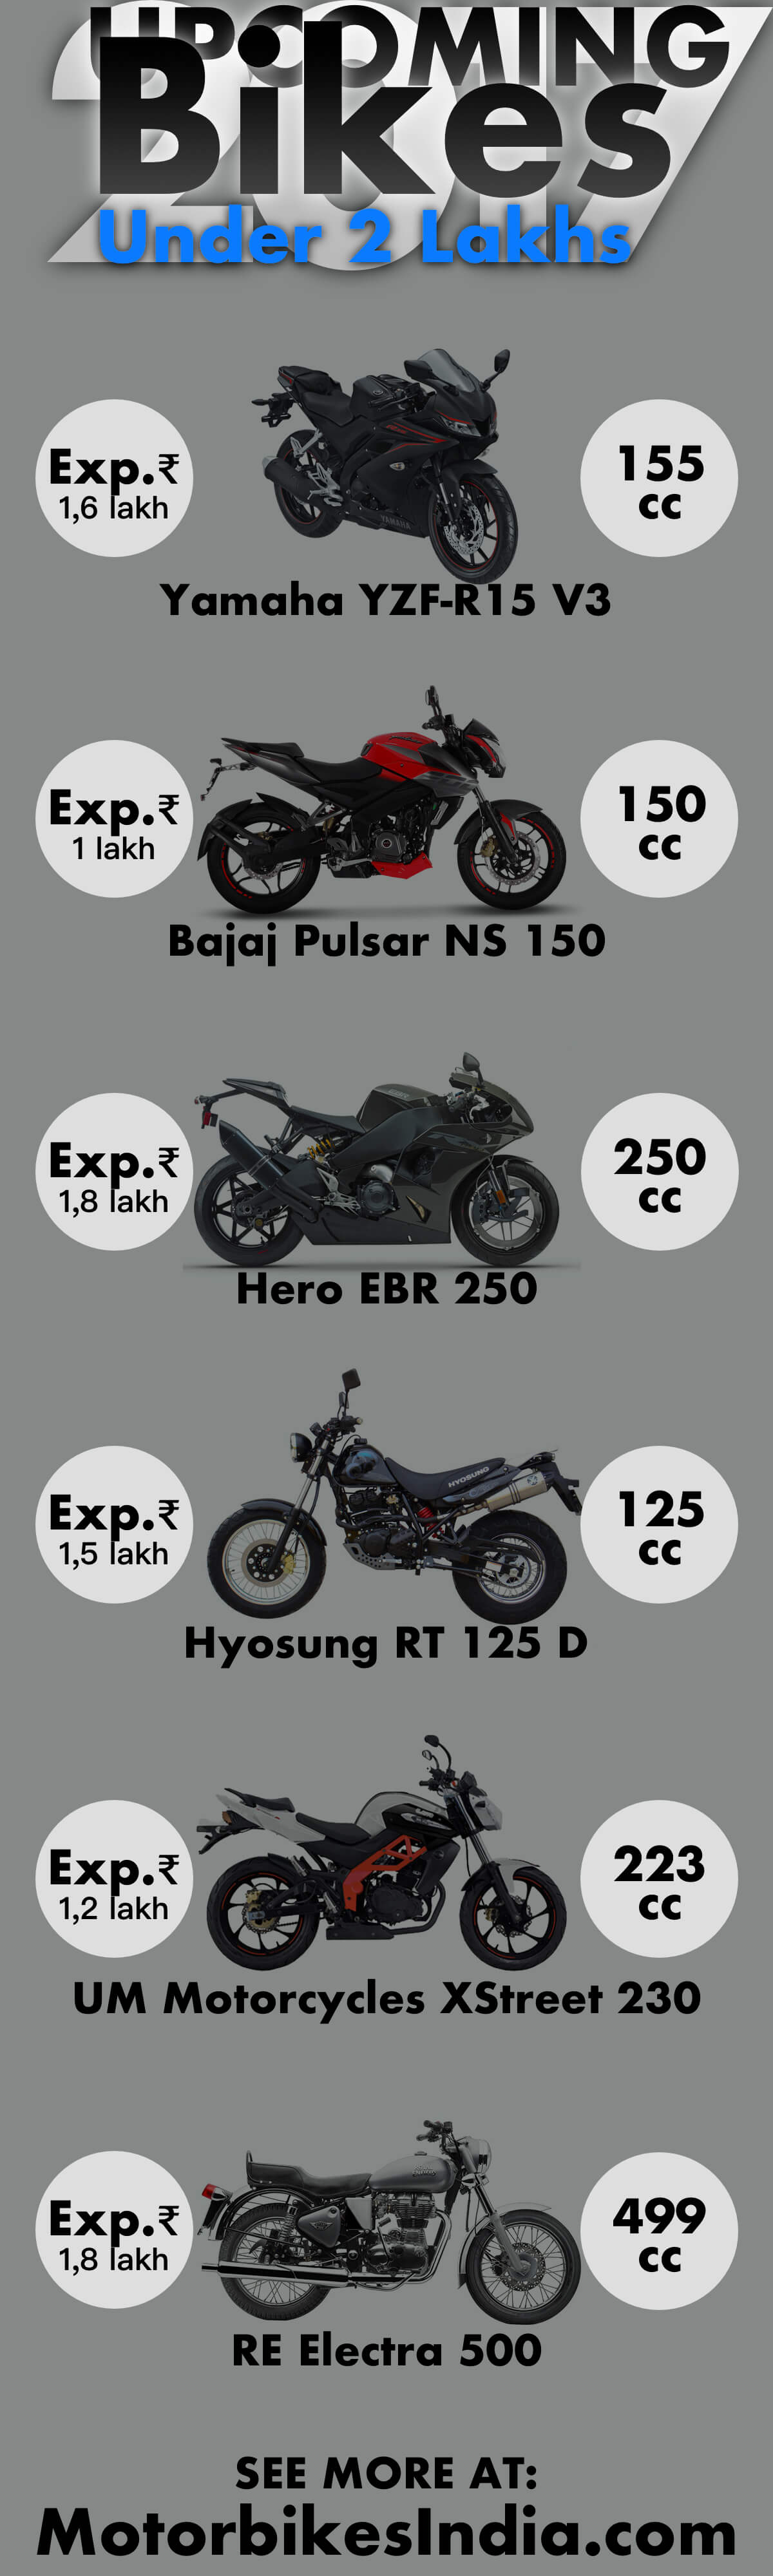 upcoming bikes under 2 lakhs 2017 infographics